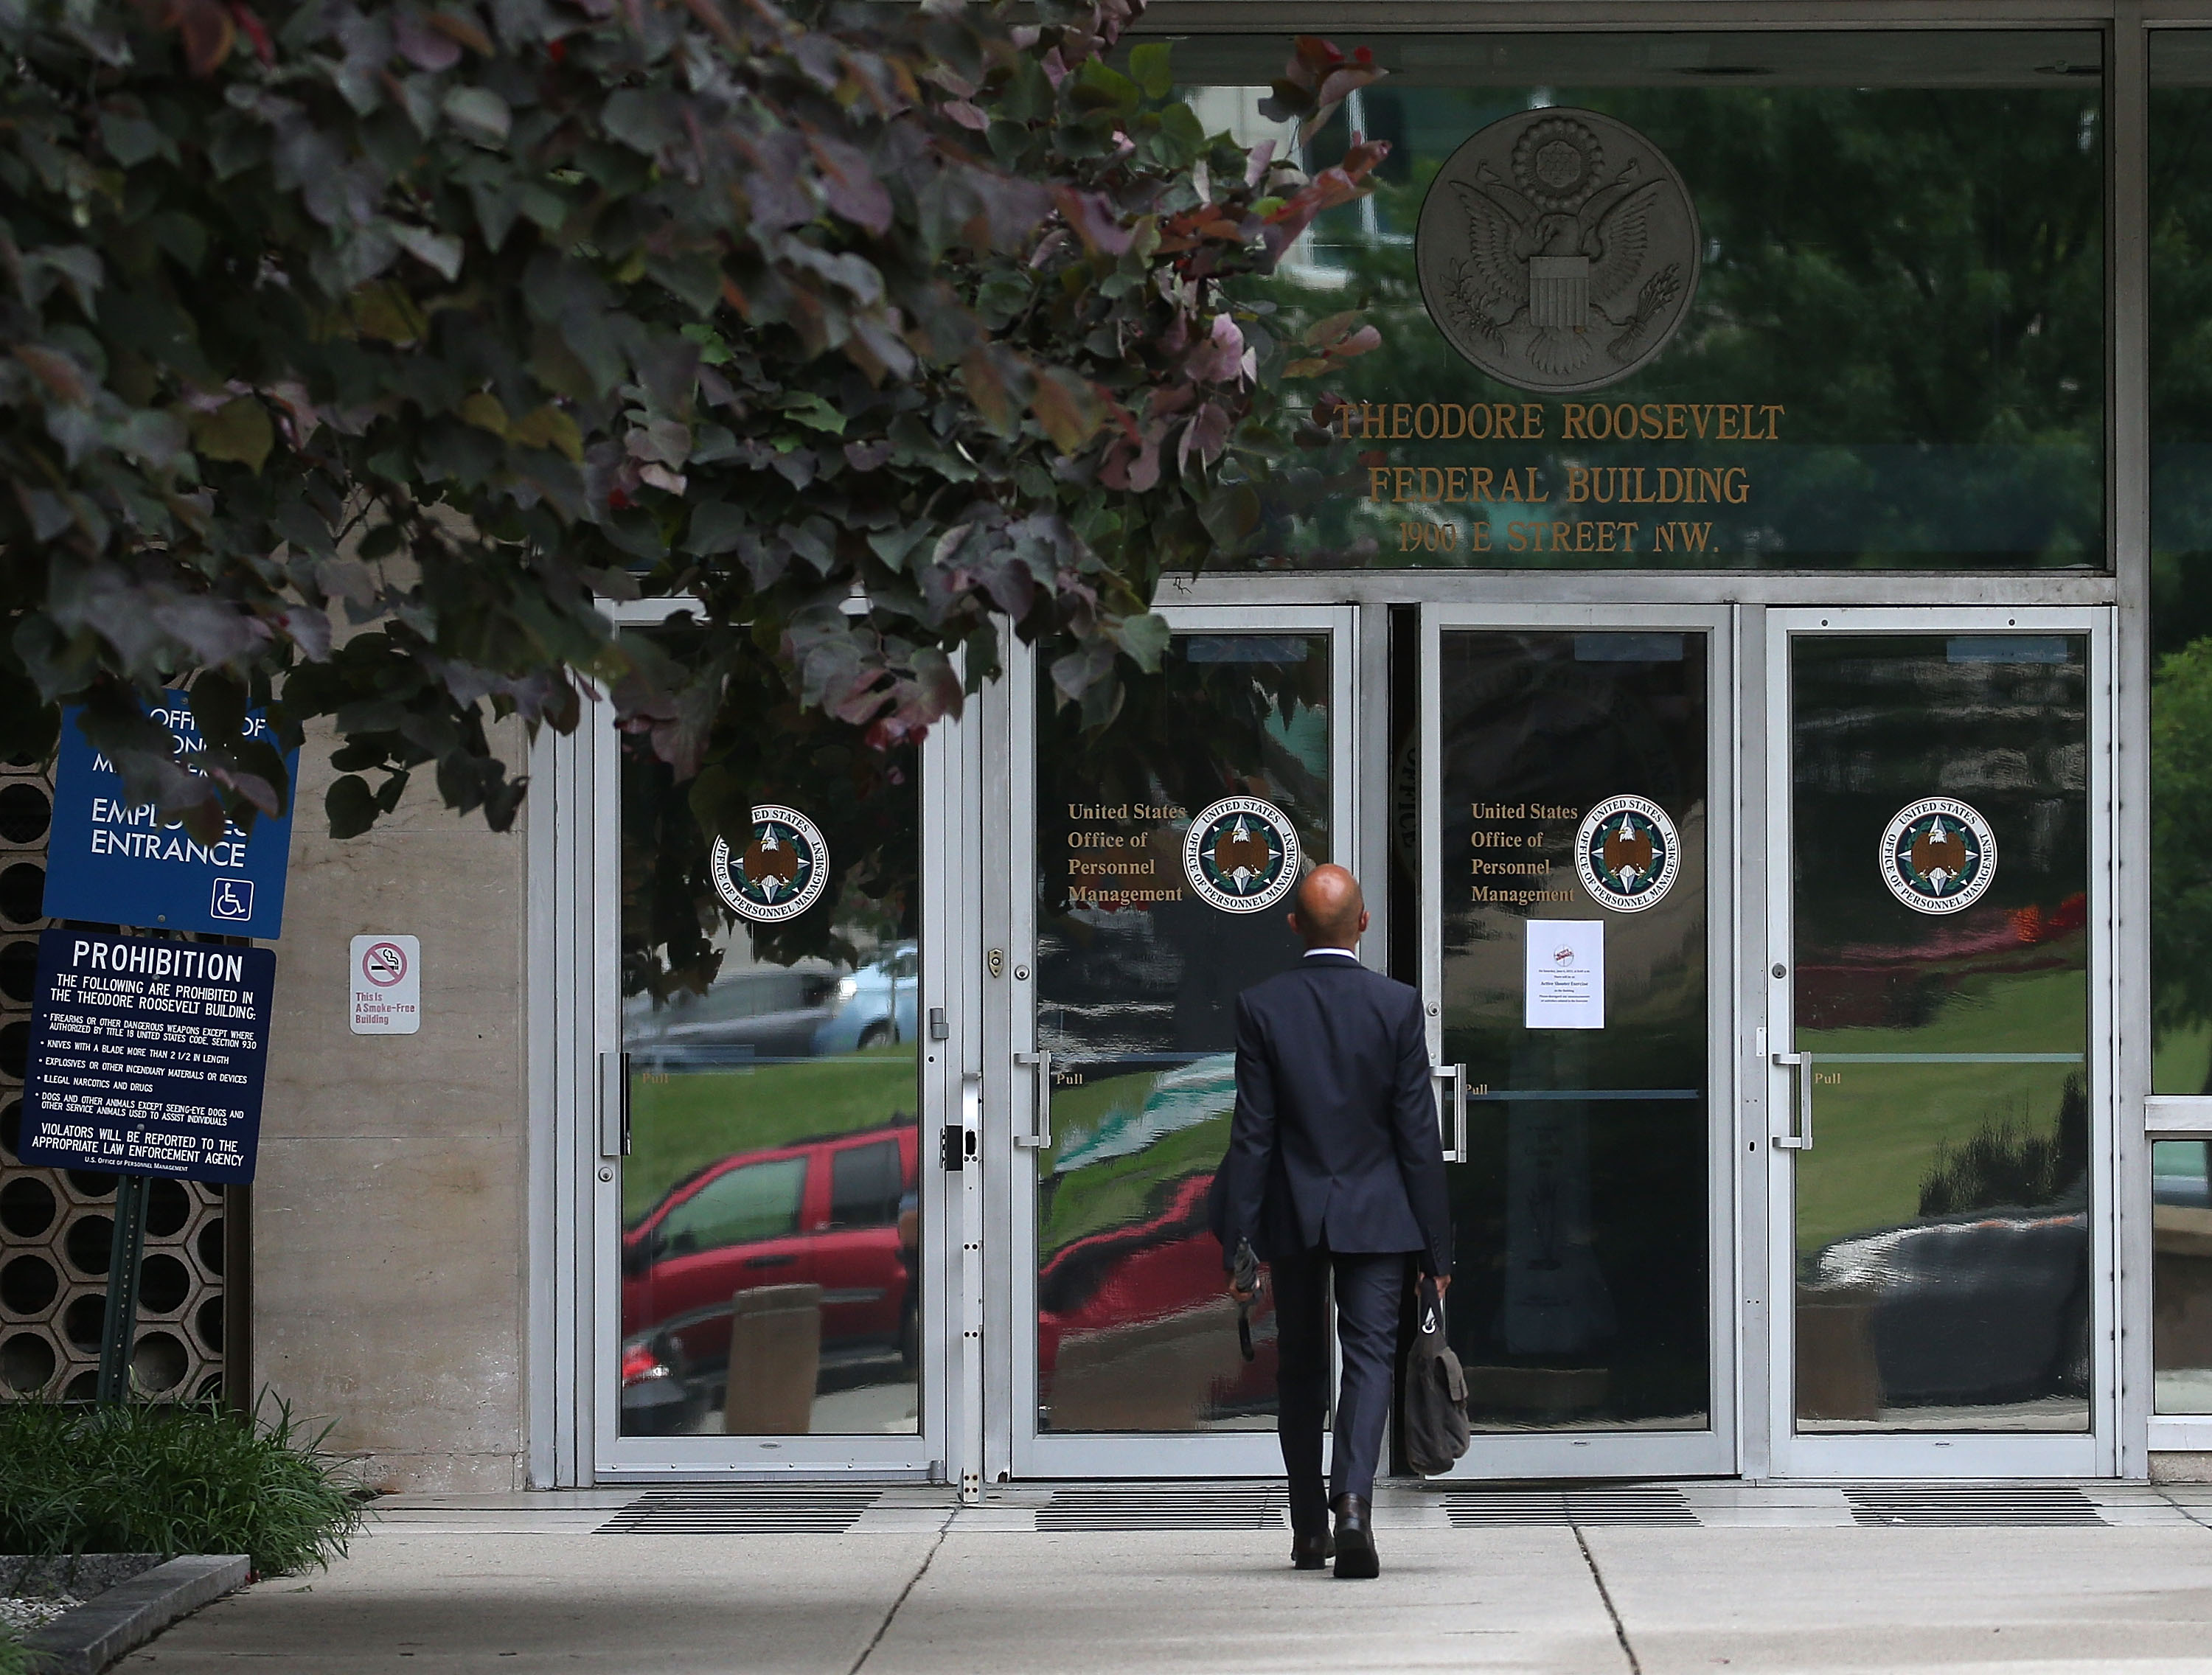 The entrance to the Theodore Roosevelt Federal Building that houses the Office of Personnel Management headquarters in Washington, D.C.